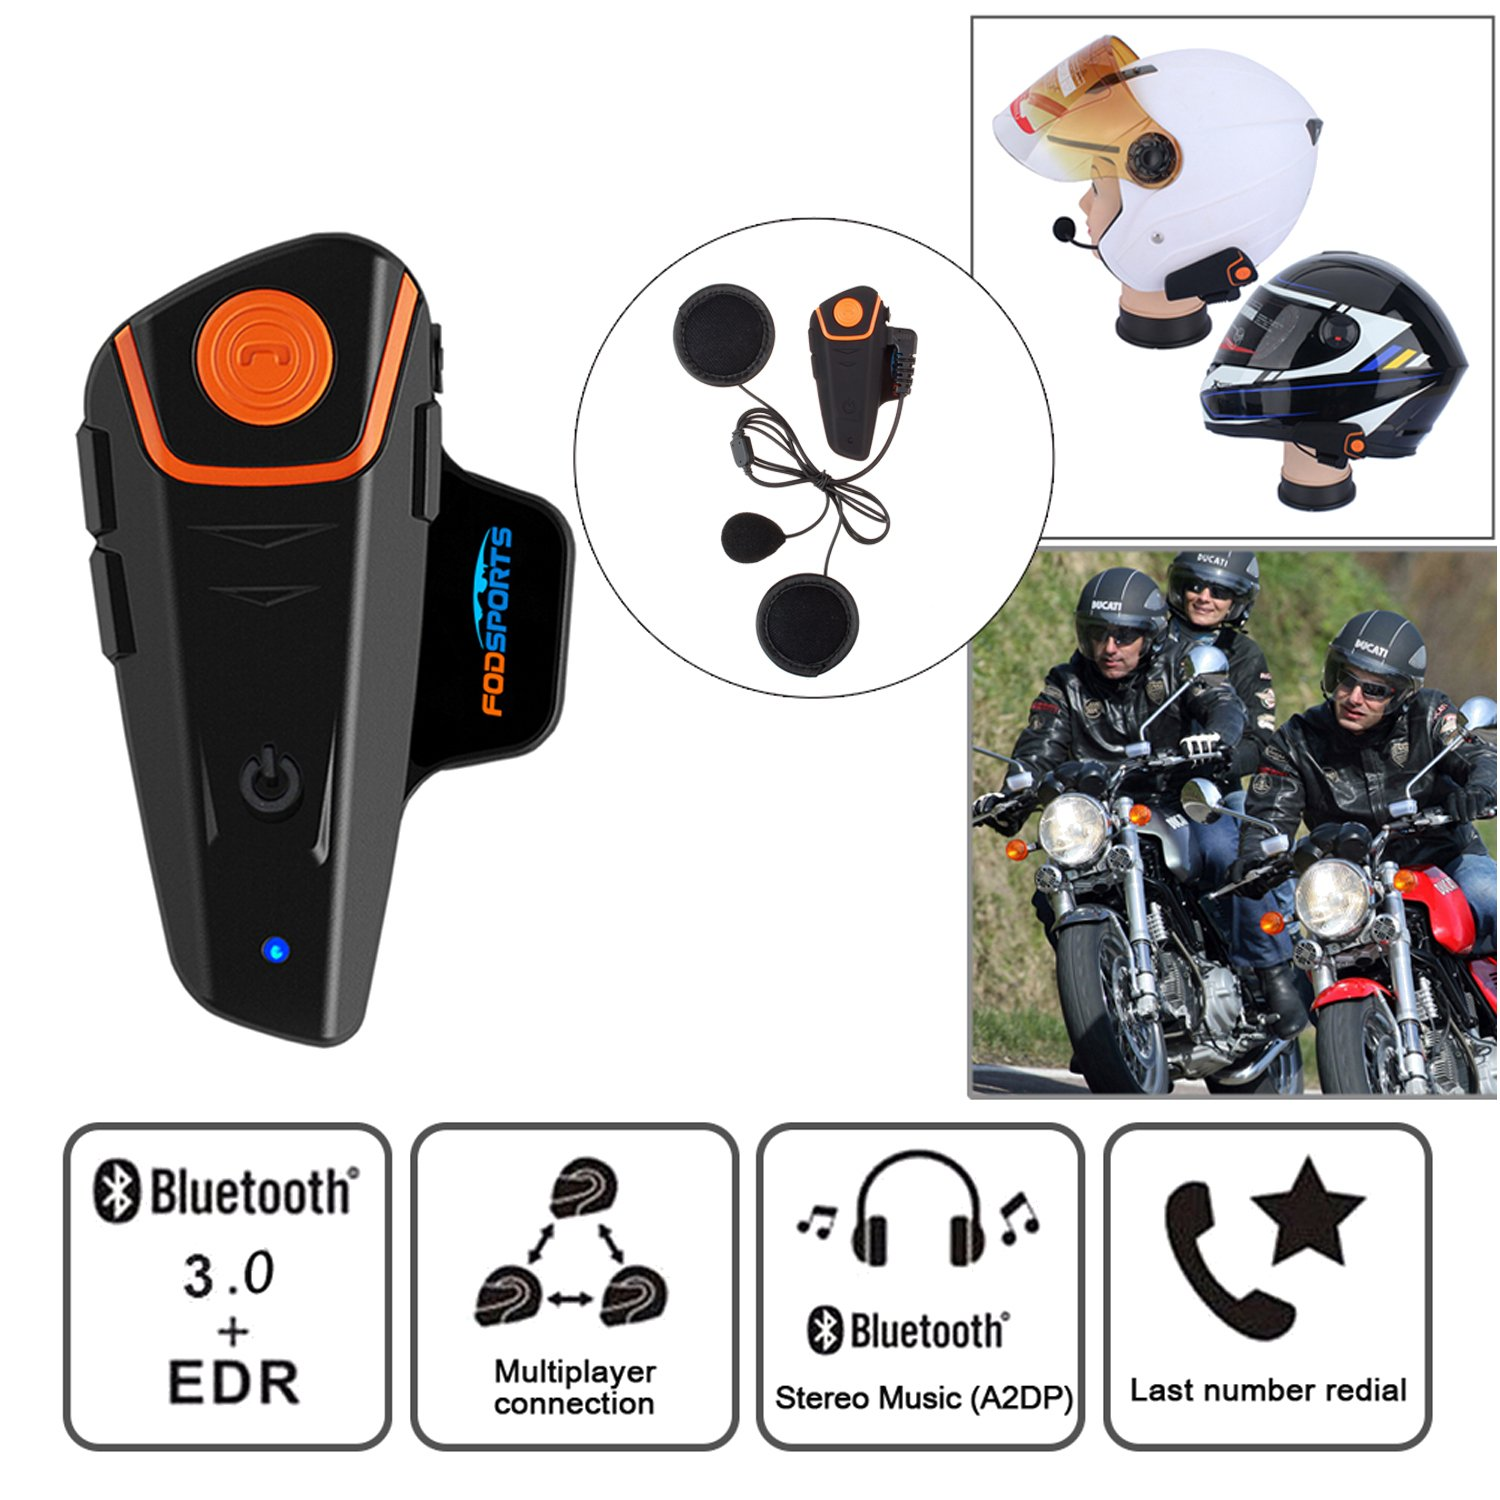 Fodsports BT-S2 Intercomunicador de Motocicleta Auricular Bluetooth Casco Sistemas de comunicación Kit Impermeable 1000M Interfono inalámbrico de Motos ...